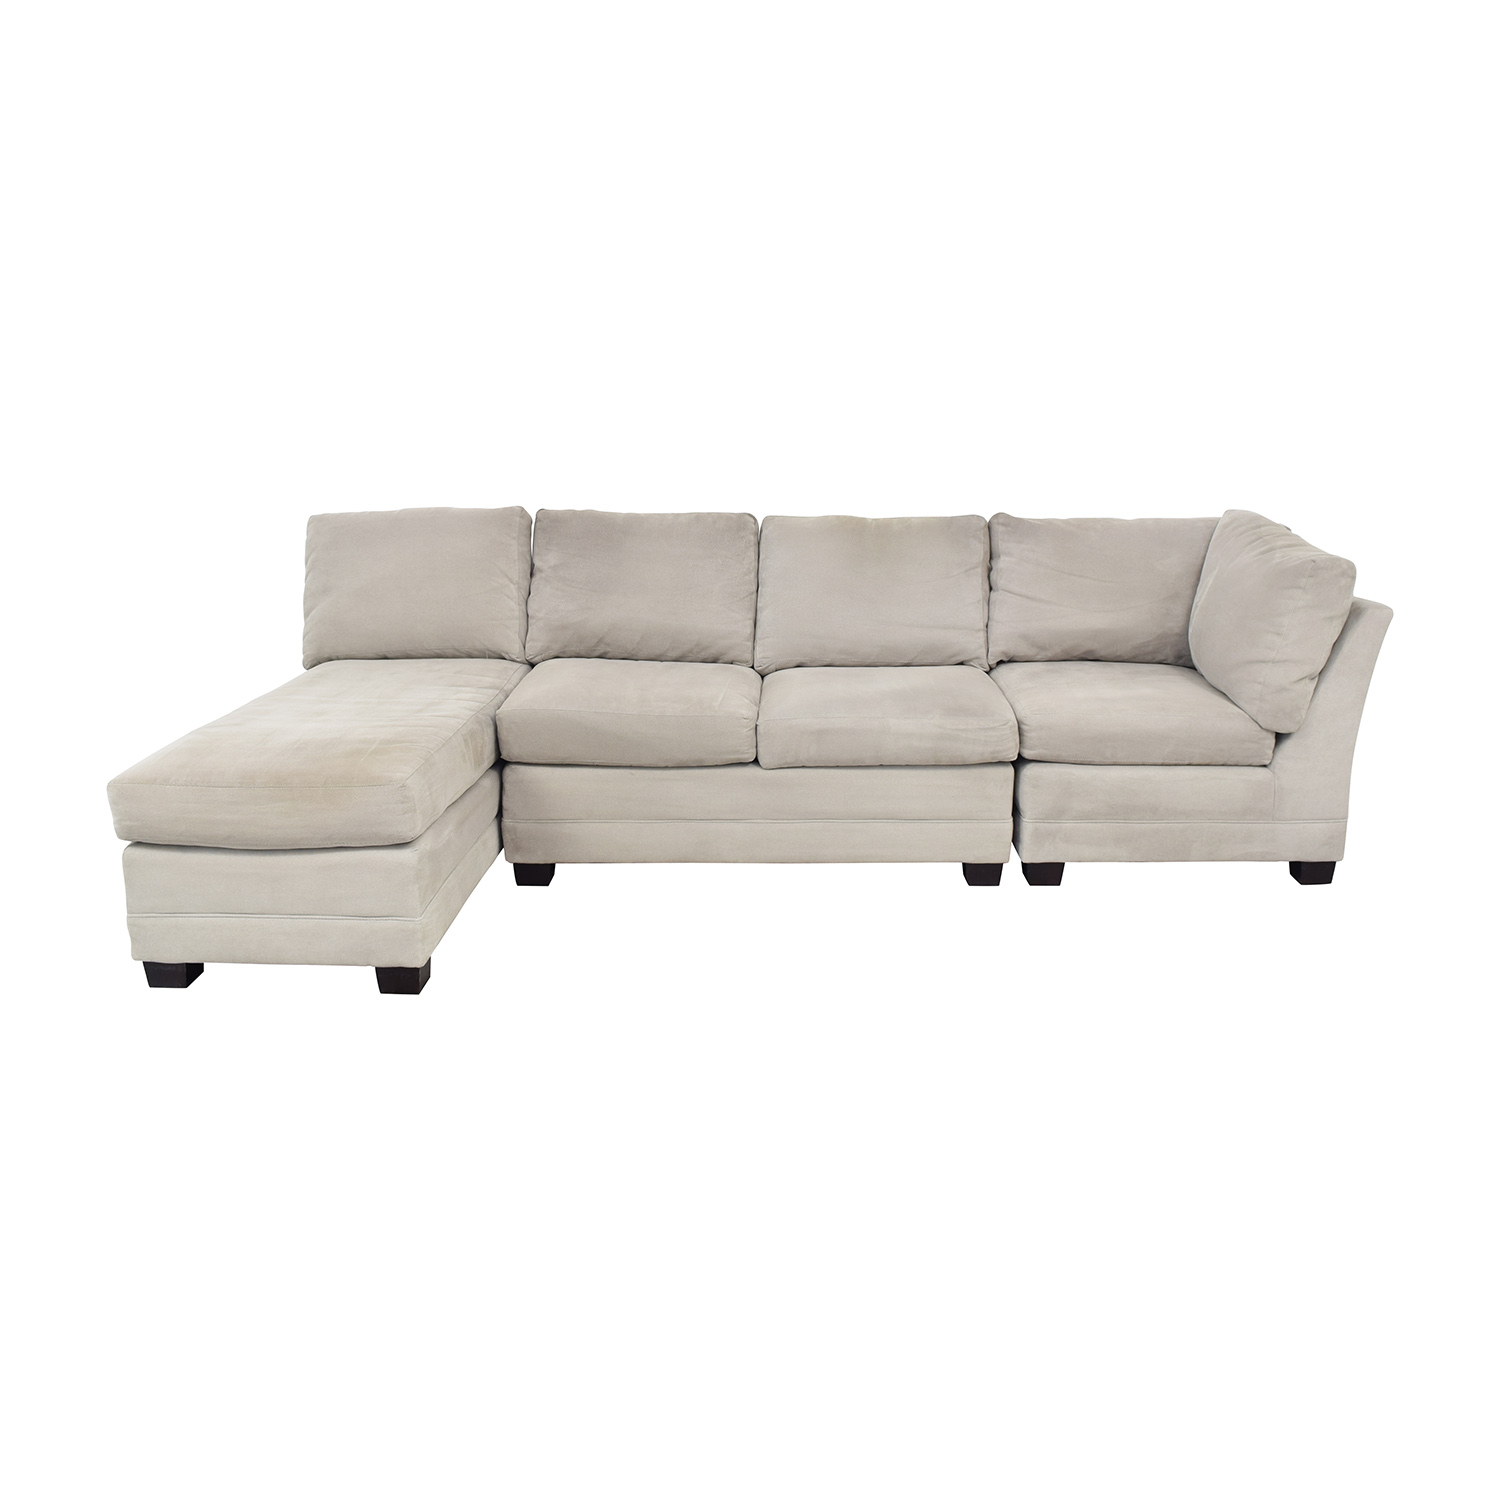 Crate & Barrel Crate & Barrel Sectional Sofa with Chaise price